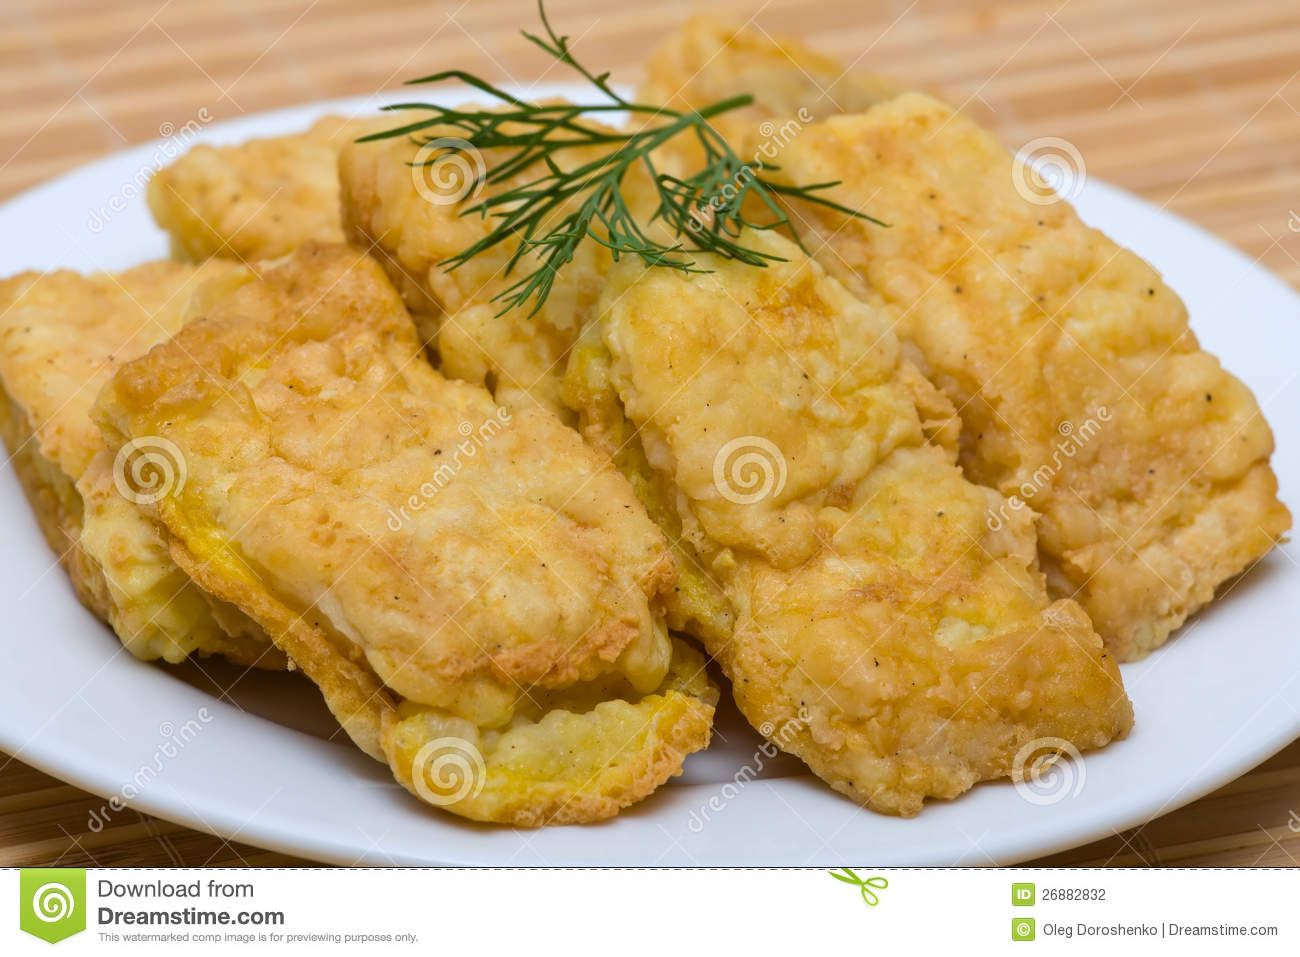 Fried fish fillet stock photography image 26882832 for Fried fish fillet